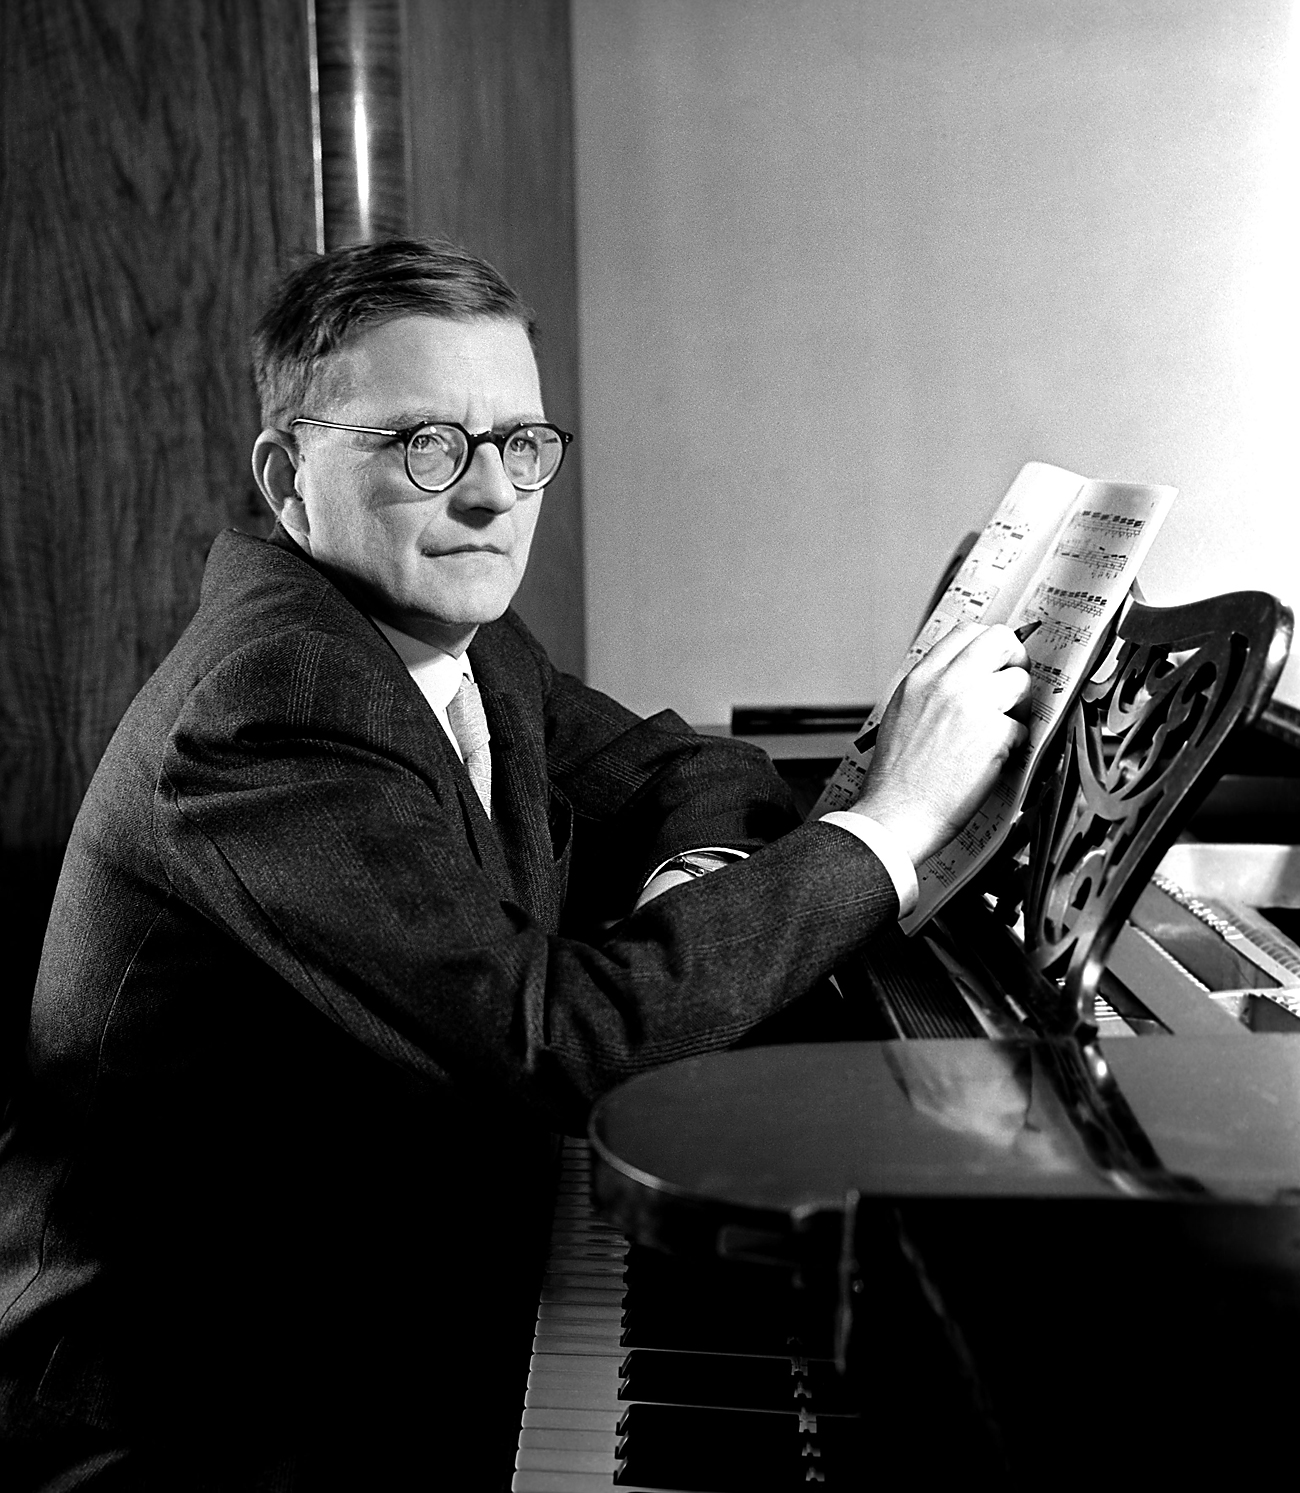 Retrato de Chostakóvitch, em 1958